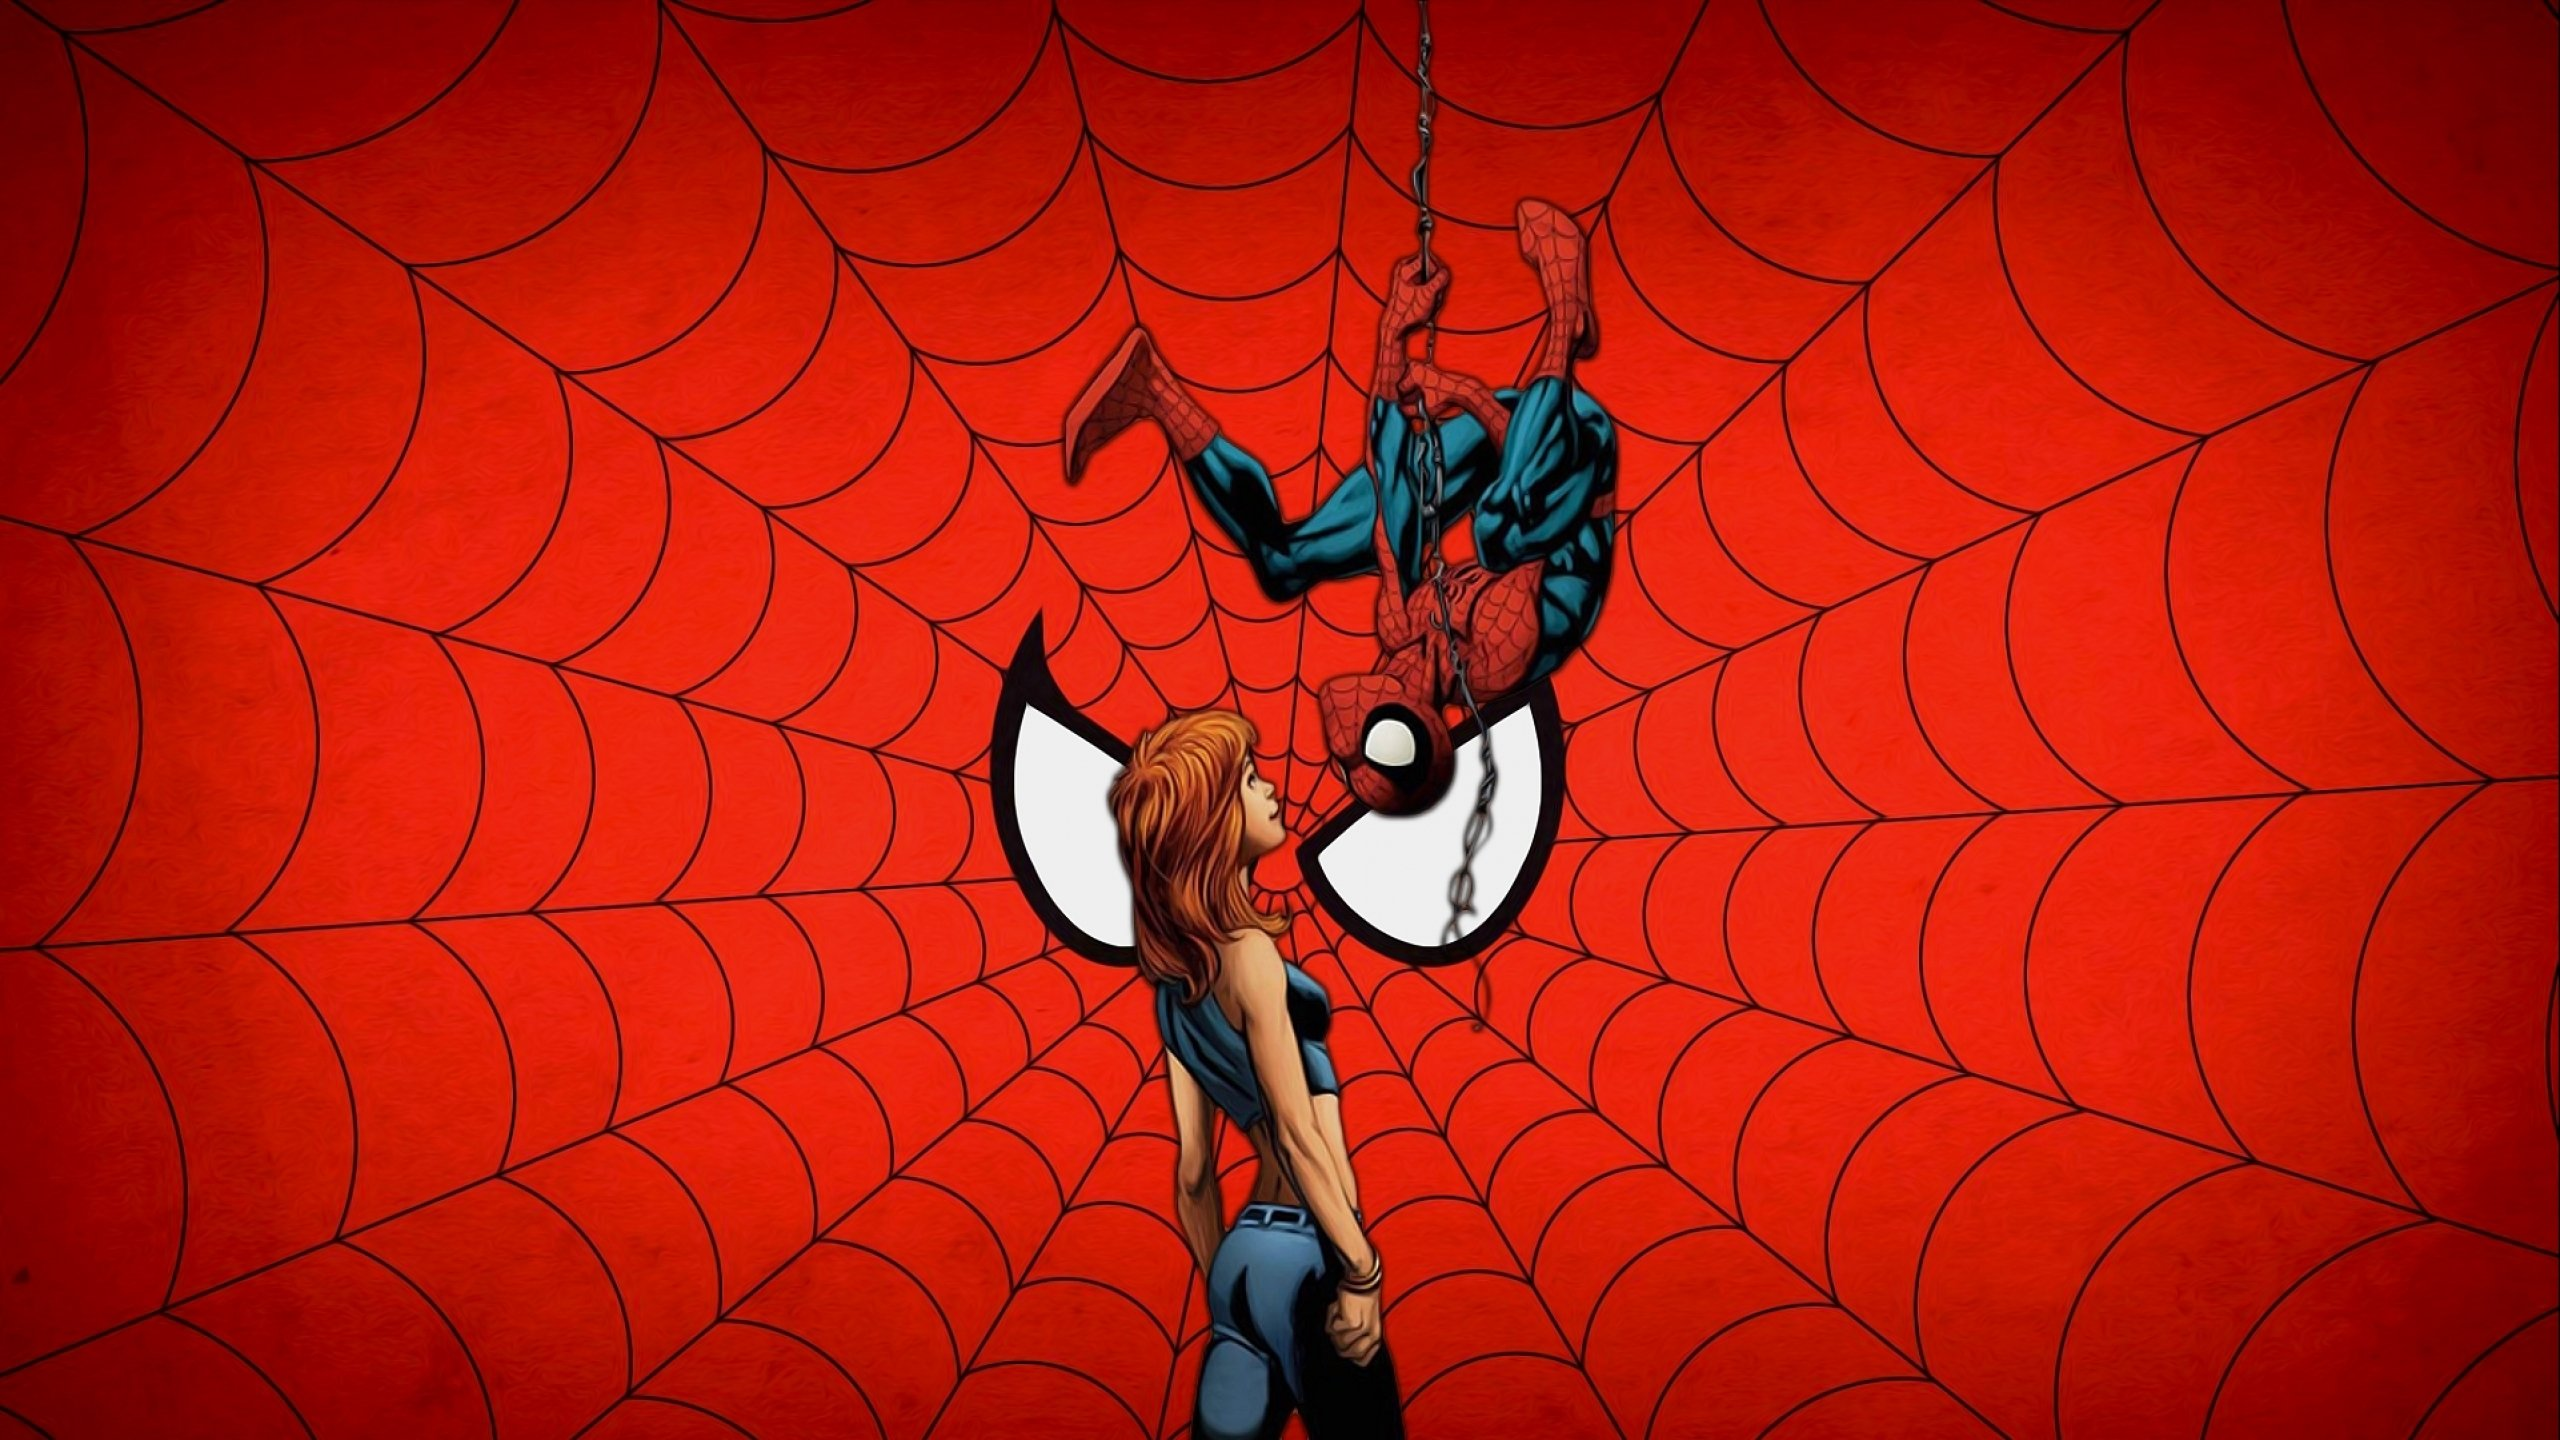 SPIDER MAN Superhero Marvel Spider Man Action Spiderman Wallpaper